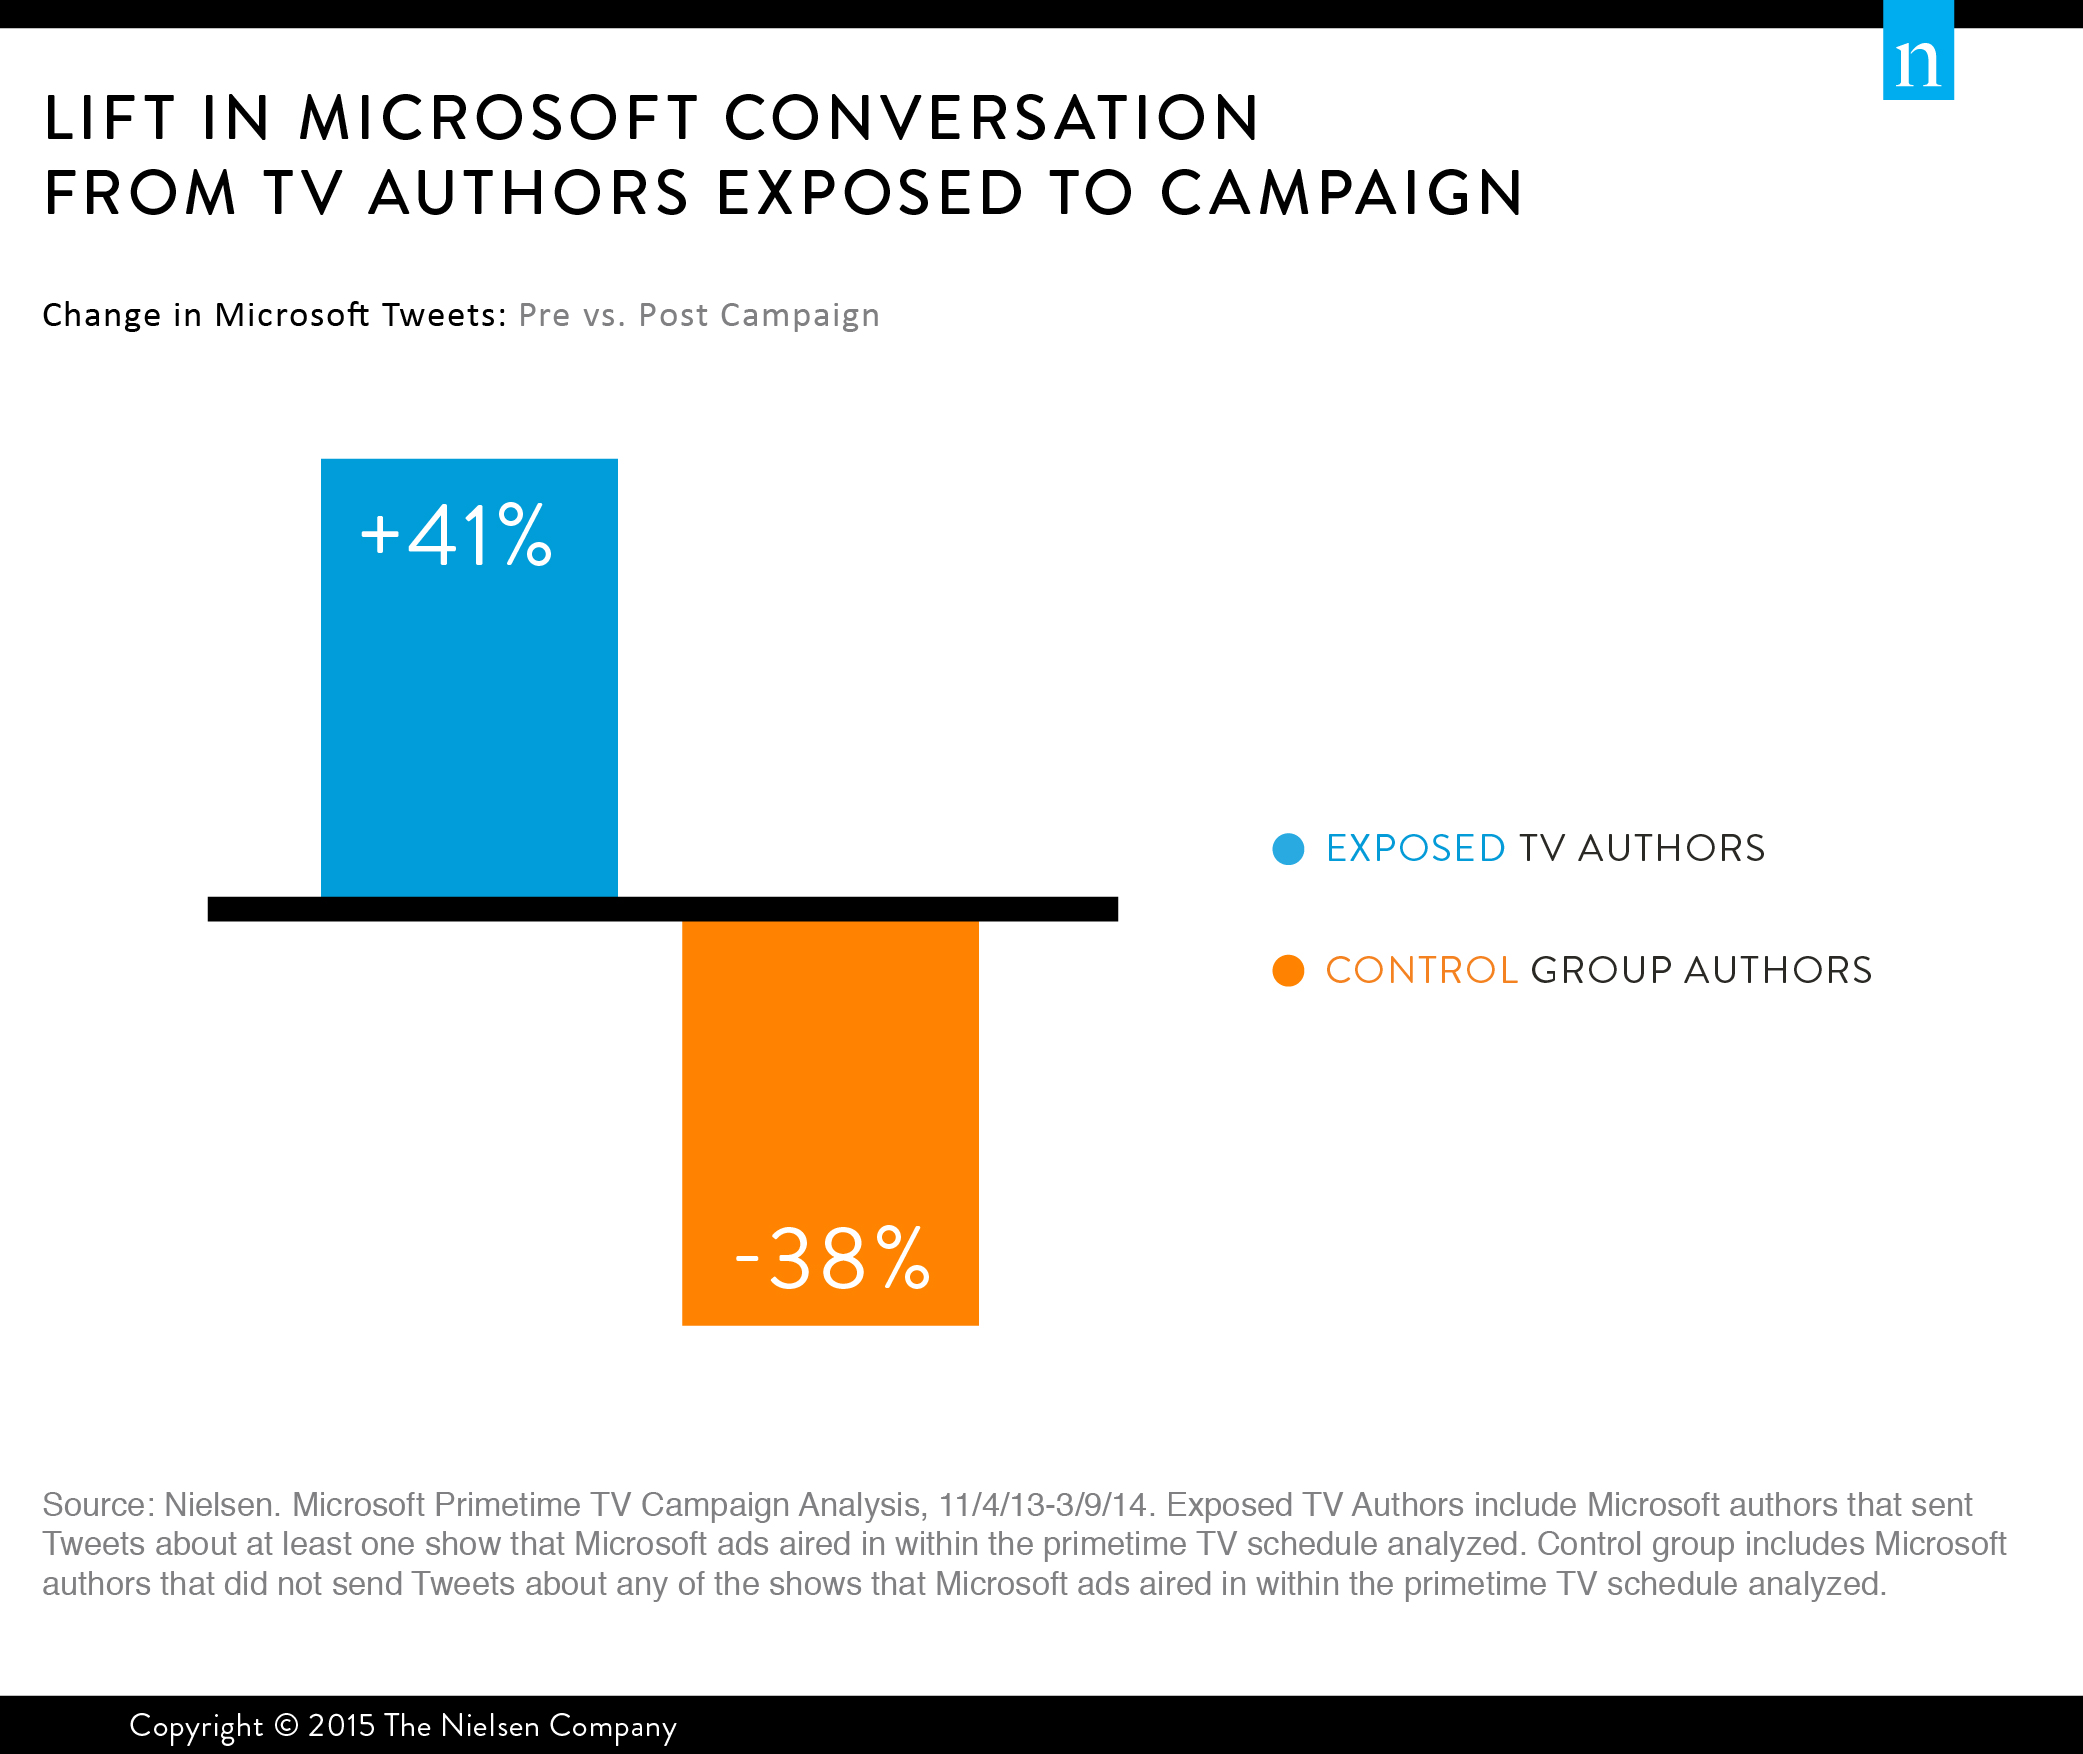 Lift in Microsoft Conversation